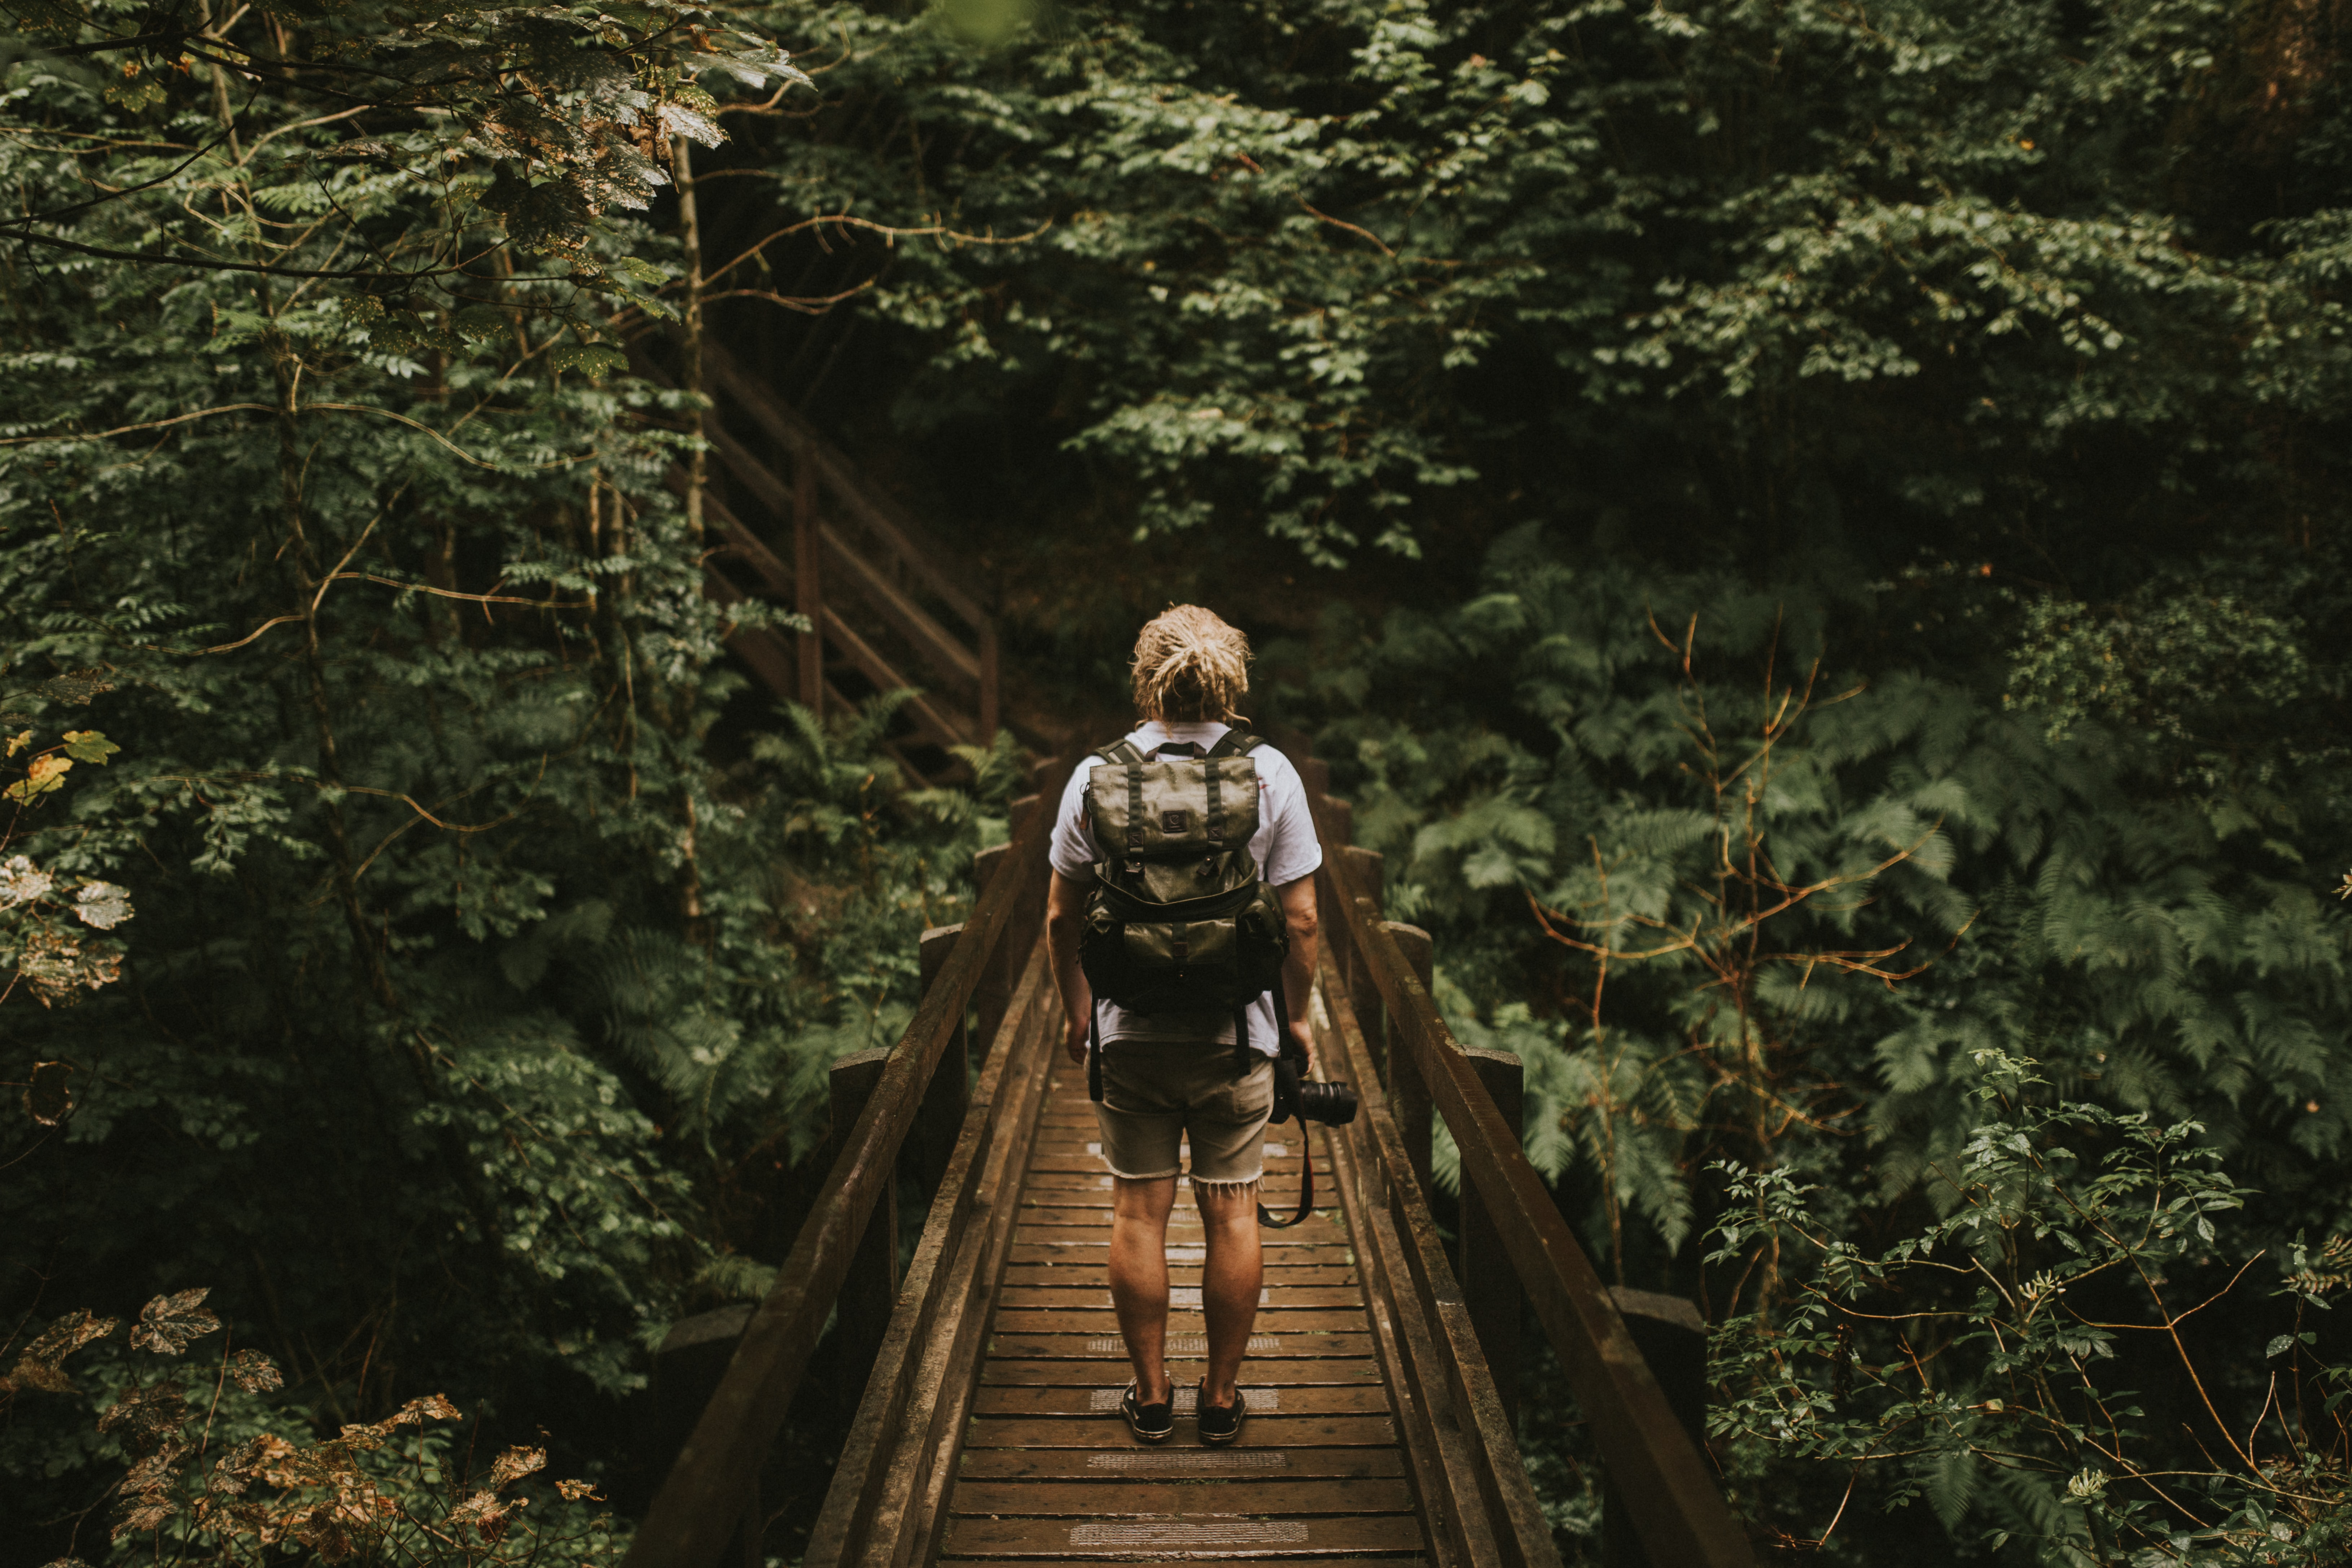 A man with a backpack and a camera on a boardwalk in a forest